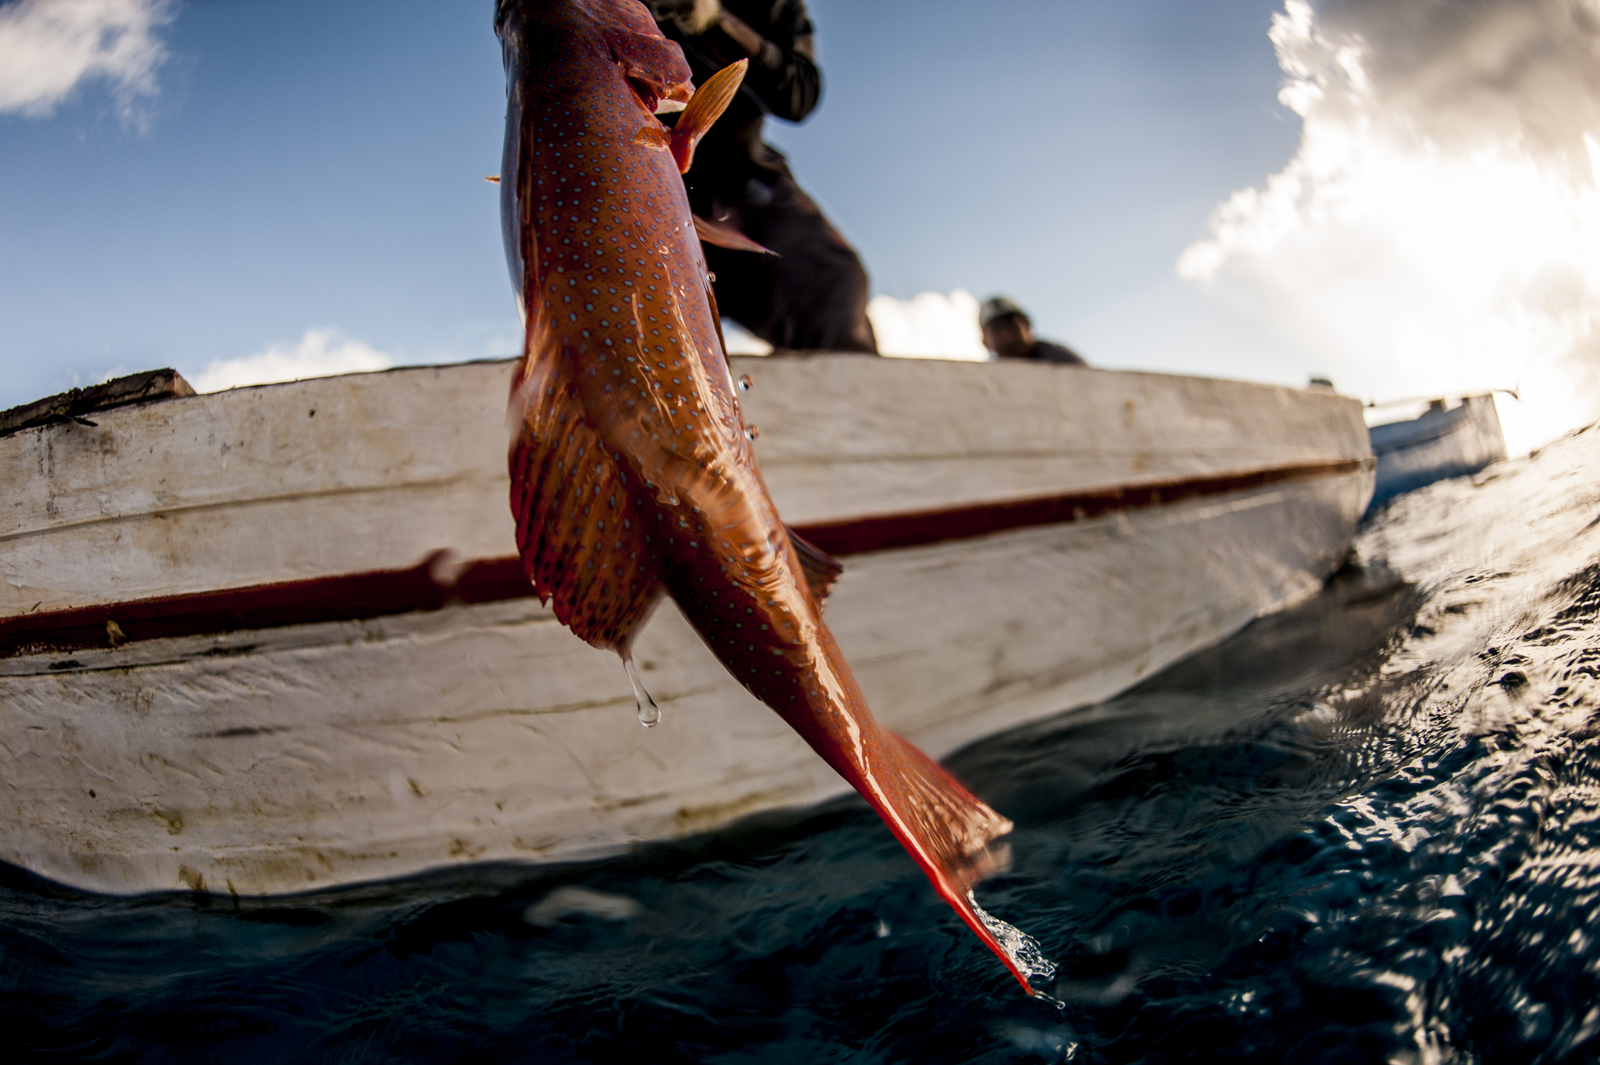 An artisanal fisher catches a grouper.